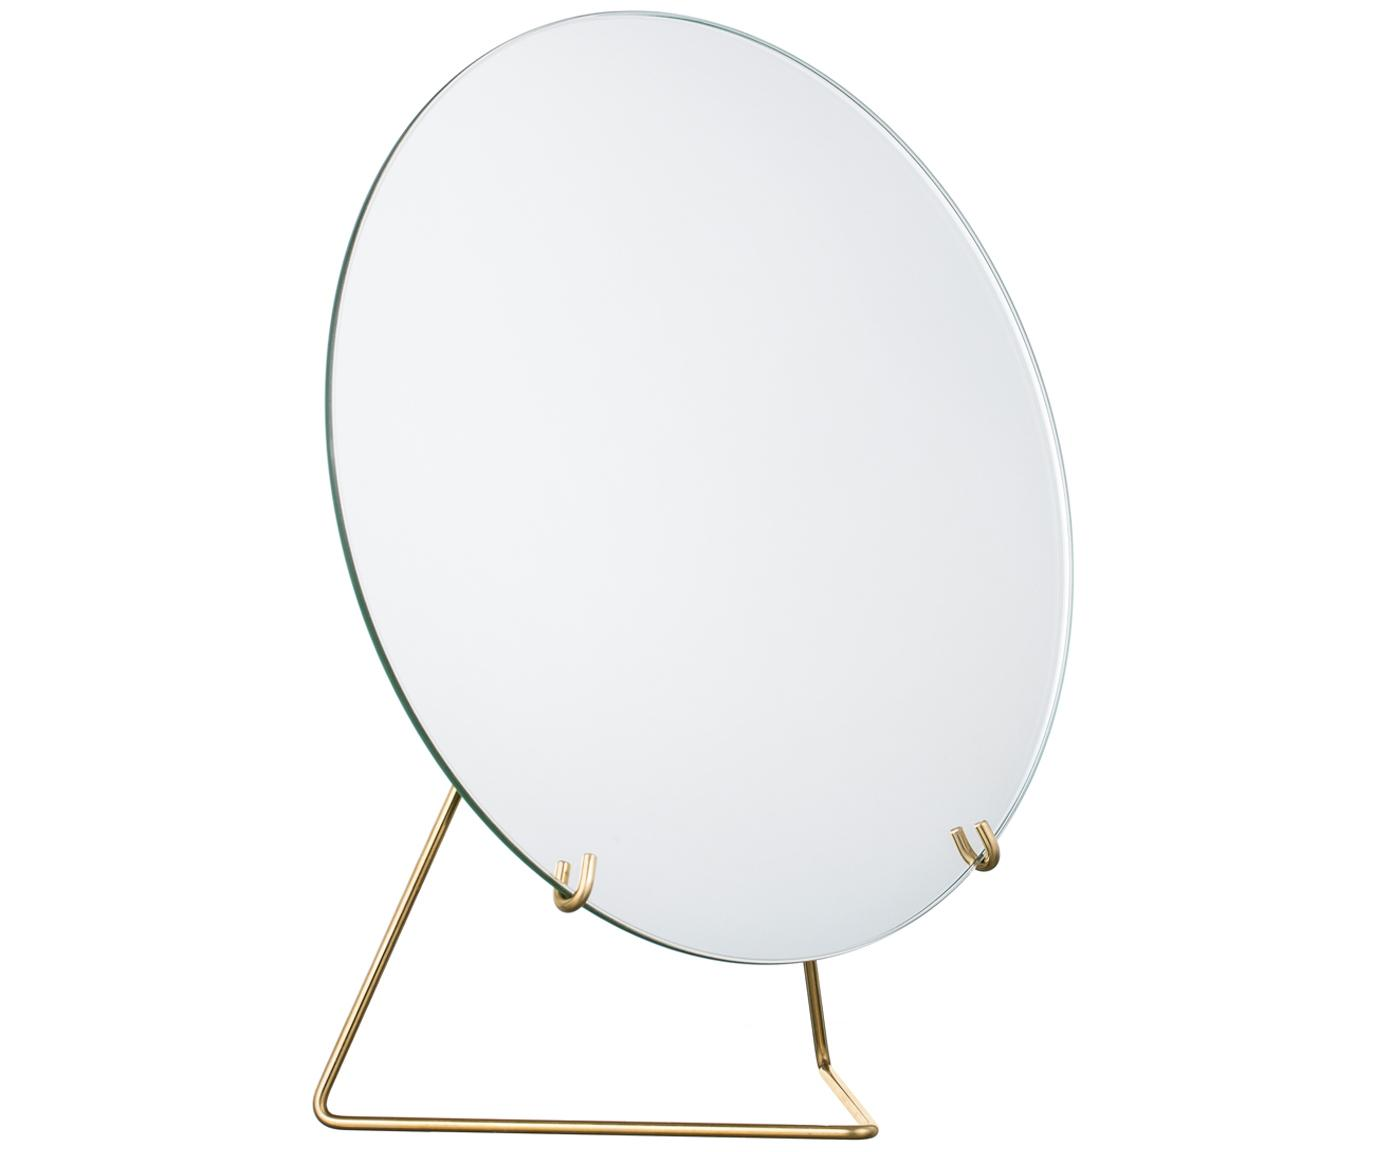 Make-up spiegel Standing Mirror, Ophanging: messingkleurig. Spiegel: spiegelglas, 20 x 23 cm